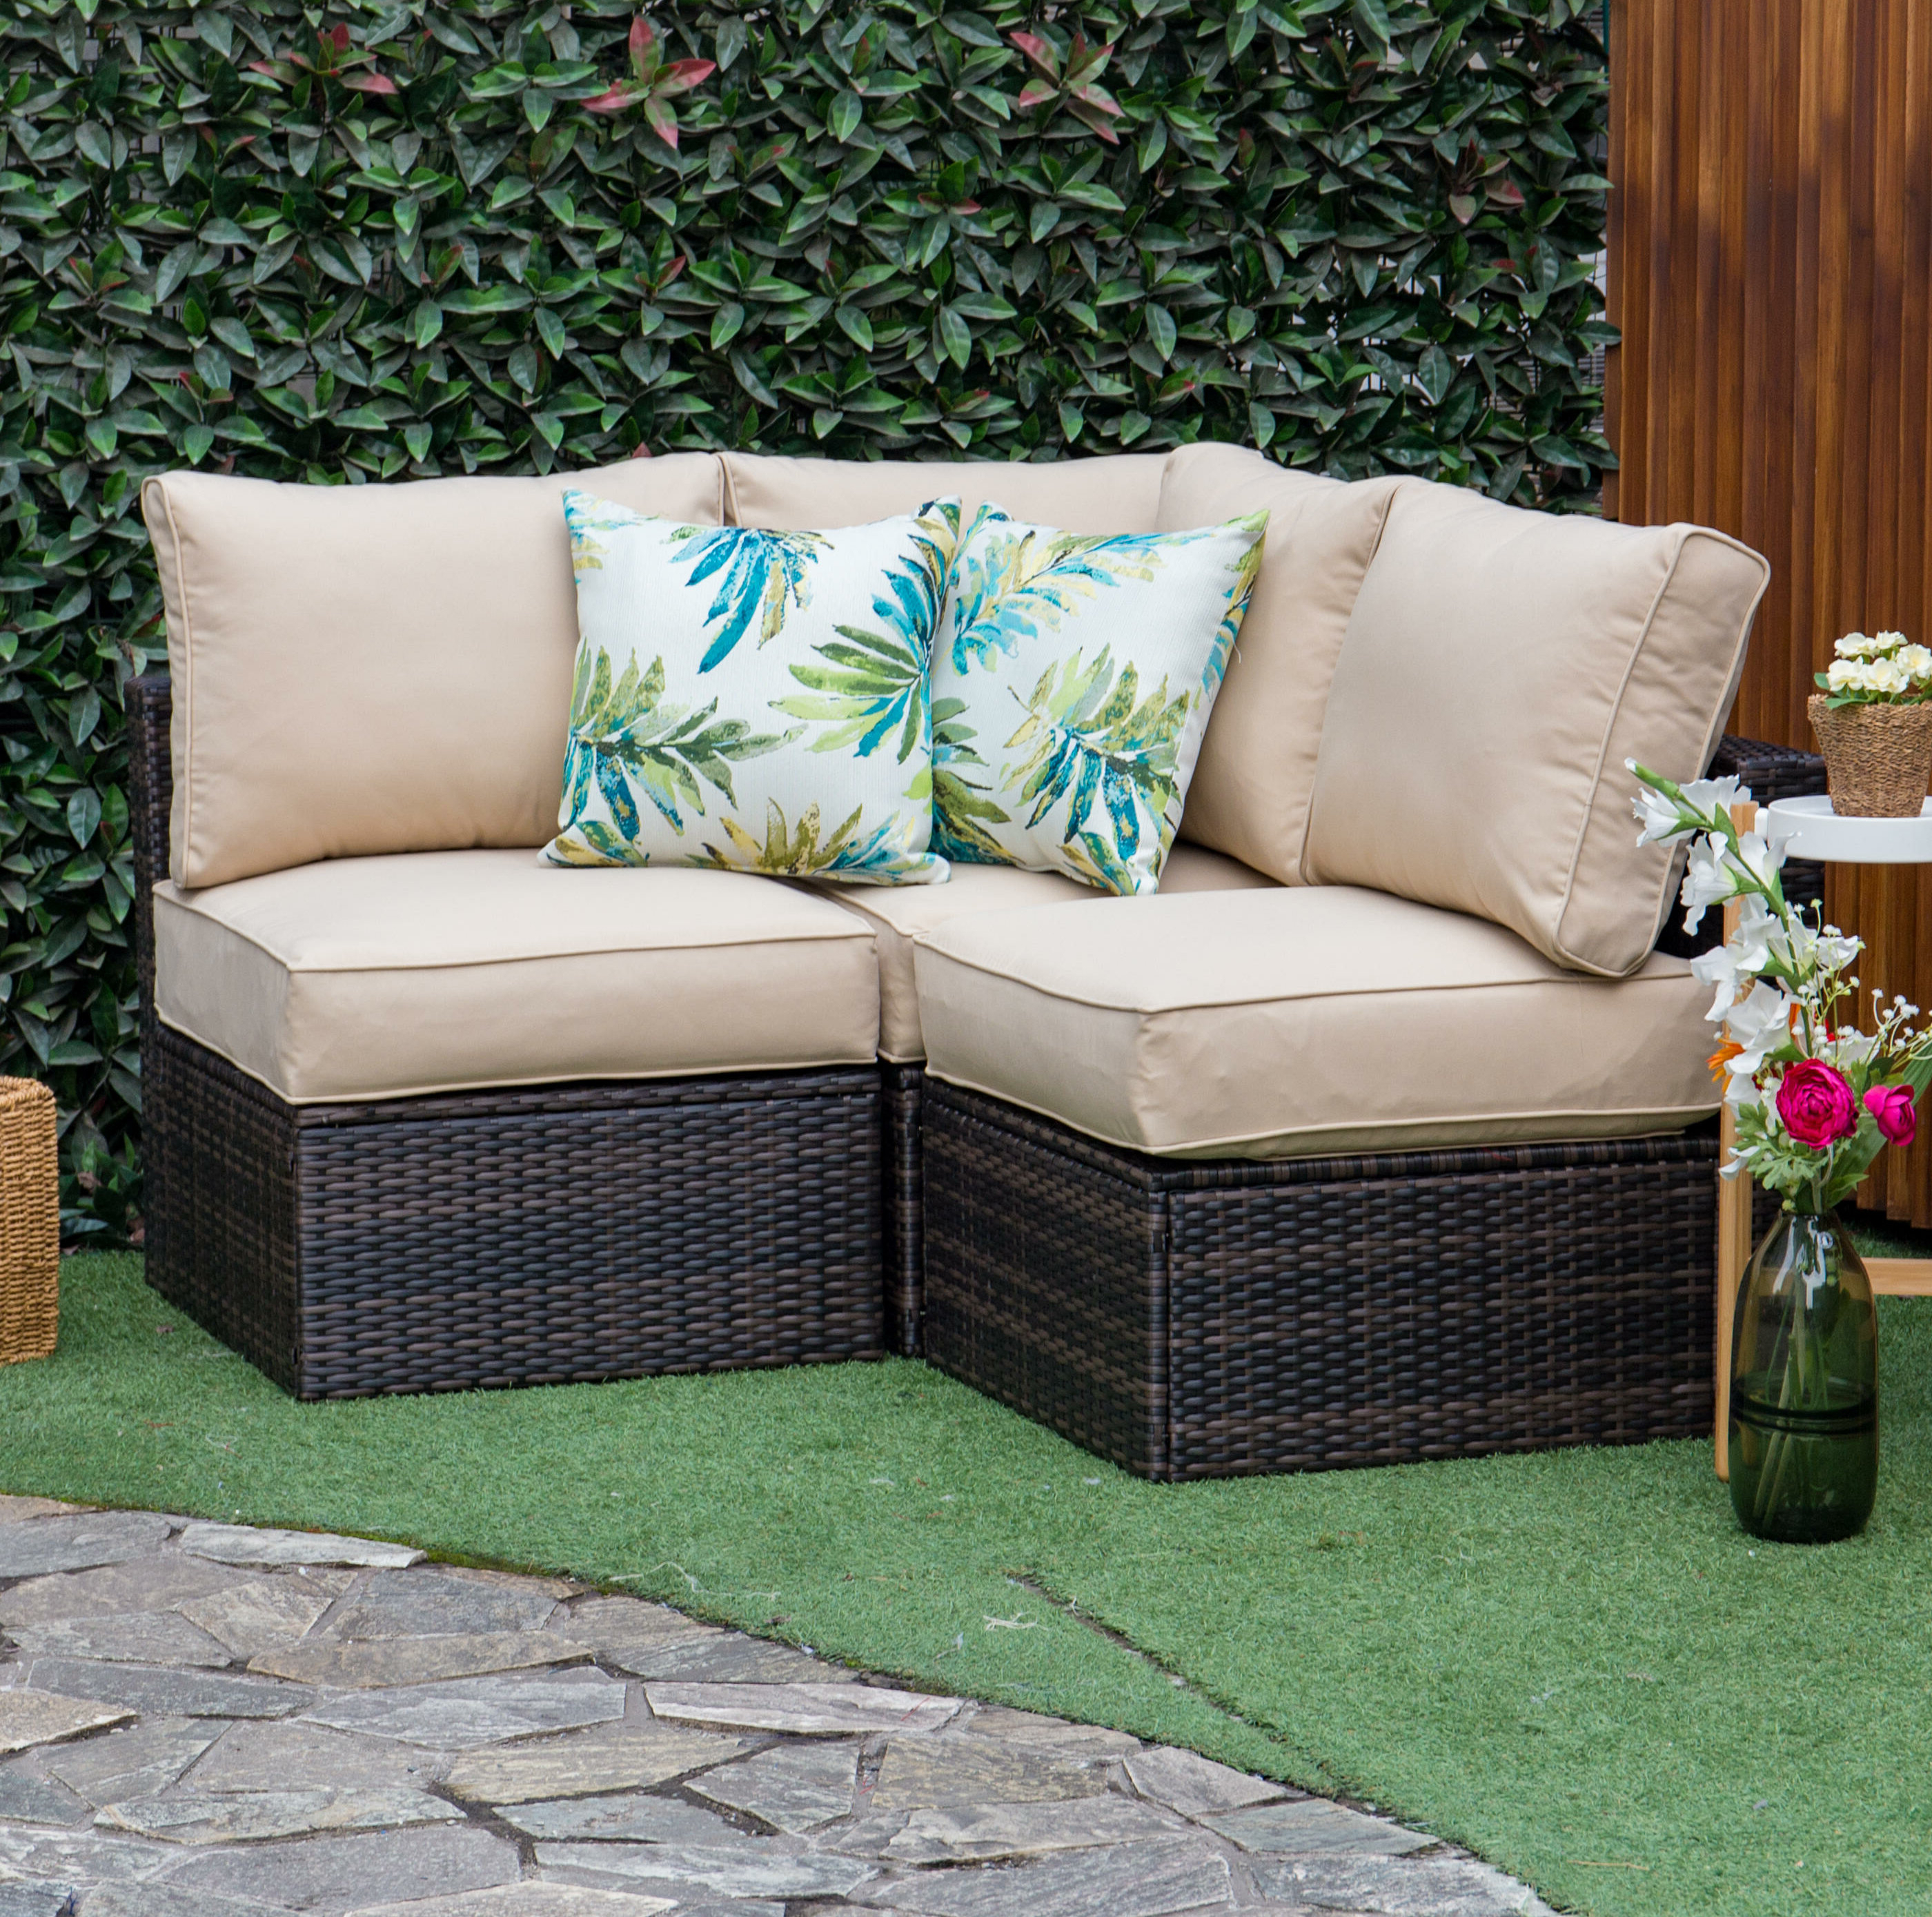 Most Recently Released Wrobel Patio Sectionals With Cushion Throughout Modular Outdoor Sectional You'll Love In (View 7 of 20)